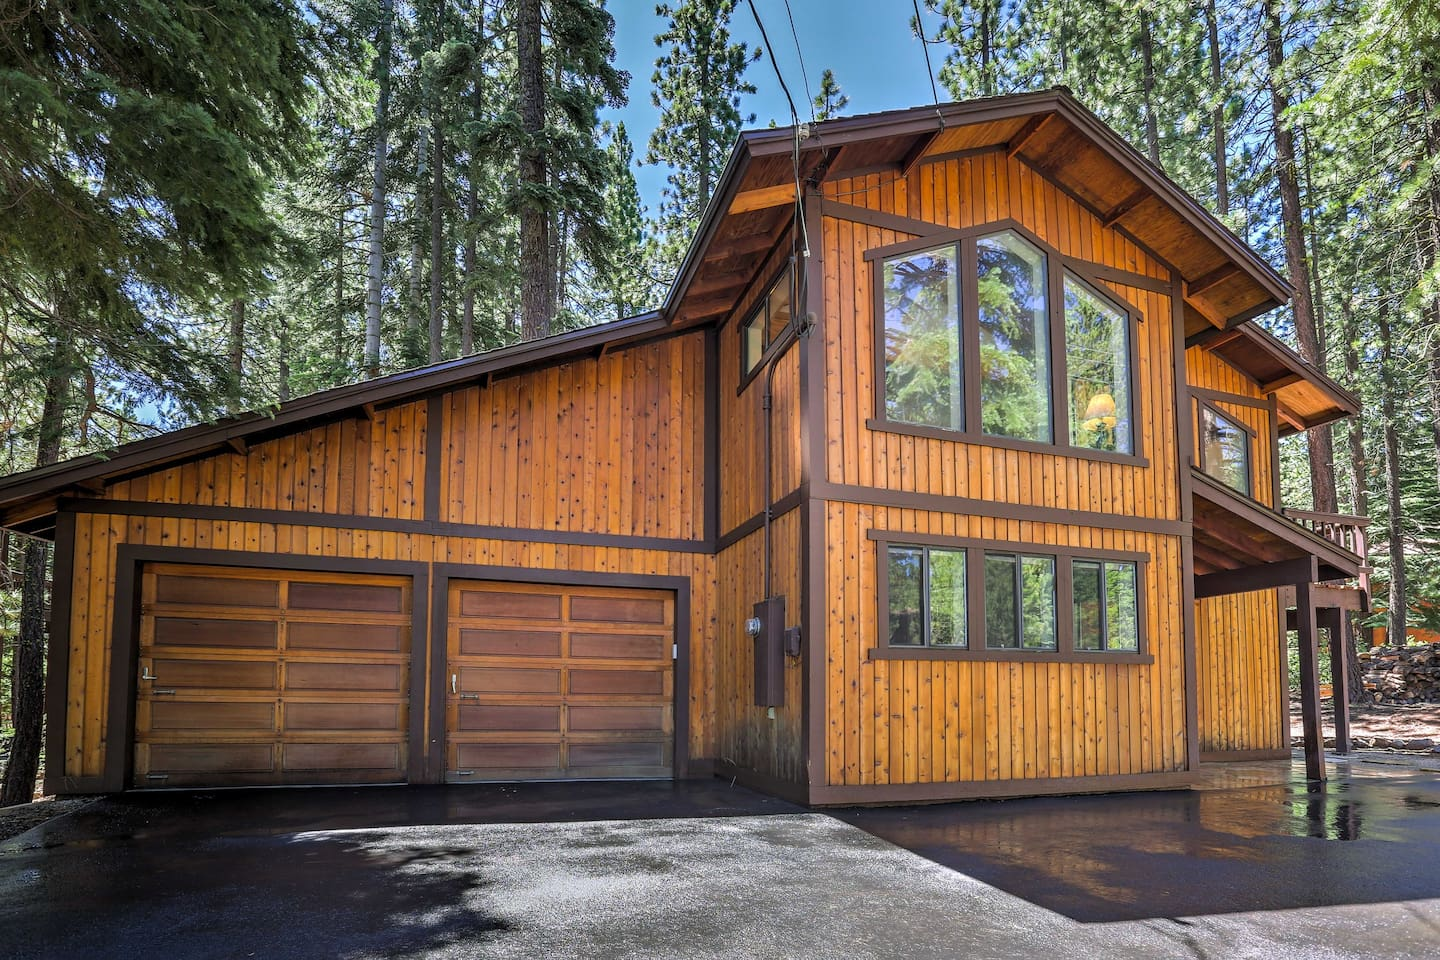 Explore the California's outdoors from this 4-BR, 3-BA Truckee vacation rental.